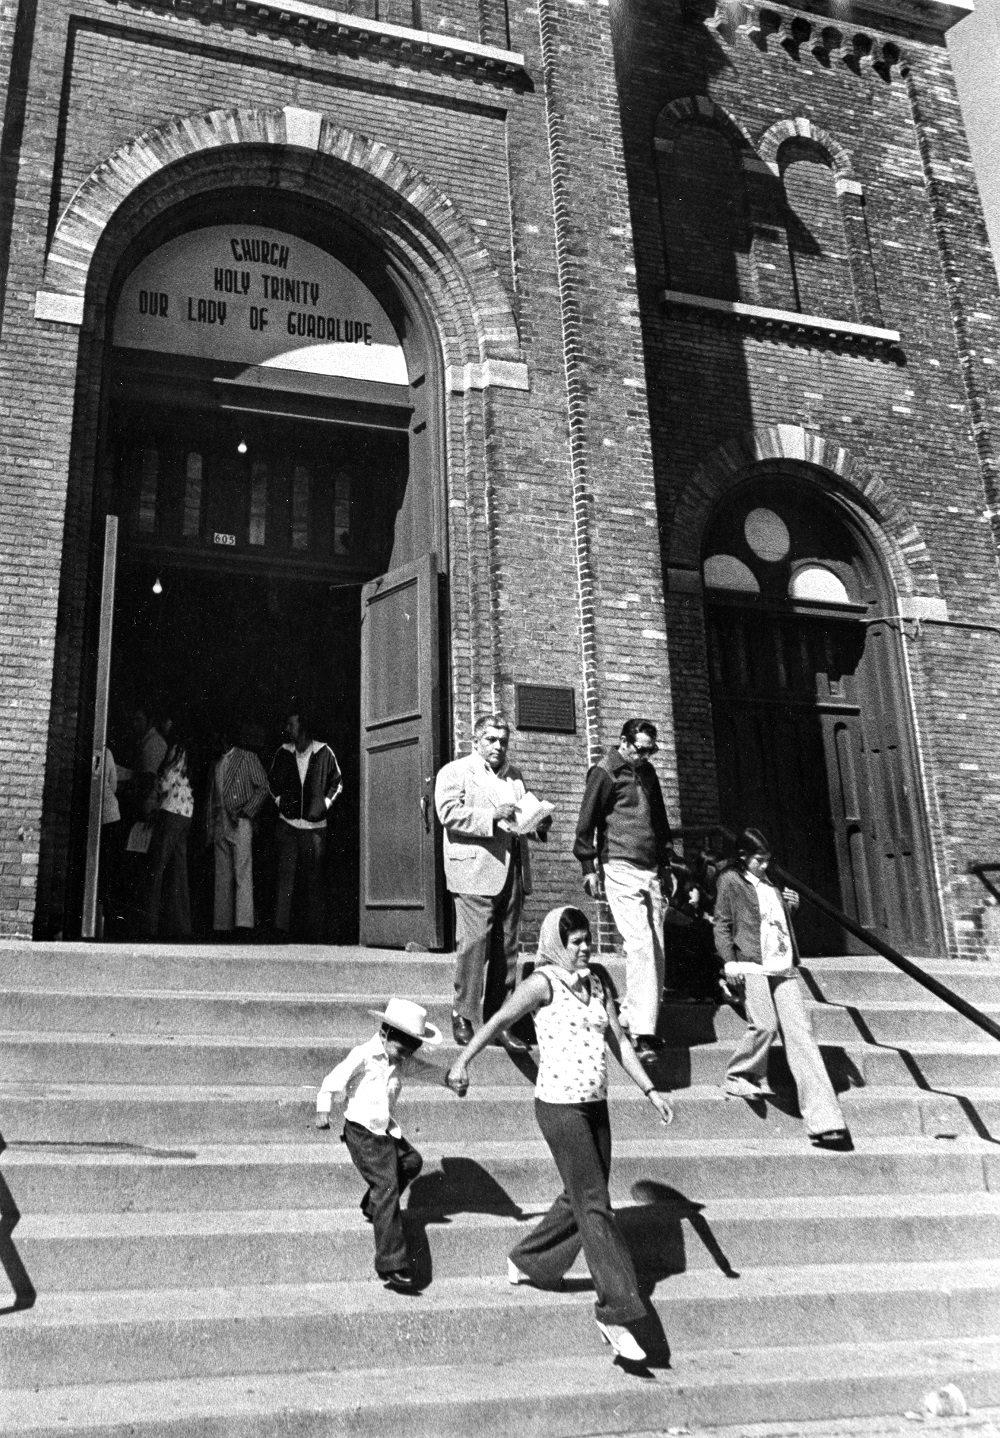 <table class=&quot;lightbox&quot;><tr><td colspan=2 class=&quot;lightbox-title&quot;>Parishioners Leave Our Lady of Guadalupe</td></tr><tr><td colspan=2 class=&quot;lightbox-caption&quot;>A group of parishioners exit Our Lady of Guadalupe after mass in 1975. </td></tr><tr><td colspan=2 class=&quot;lightbox-spacer&quot;></td></tr><tr class=&quot;lightbox-detail&quot;><td class=&quot;cell-title&quot;>Source: </td><td class=&quot;cell-value&quot;>From the Historic Photo Archive of the Milwaukee Public Library. Reprinted with permission. <br /><a href=&quot;http://content.mpl.org/cdm/singleitem/collection/HstoricPho/id/5824/rec/8&quot; target=&quot;_blank&quot;>Milwaukee Public Library</a></td></tr><tr class=&quot;filler-row&quot;><td colspan=2>&nbsp;</td></tr></table>